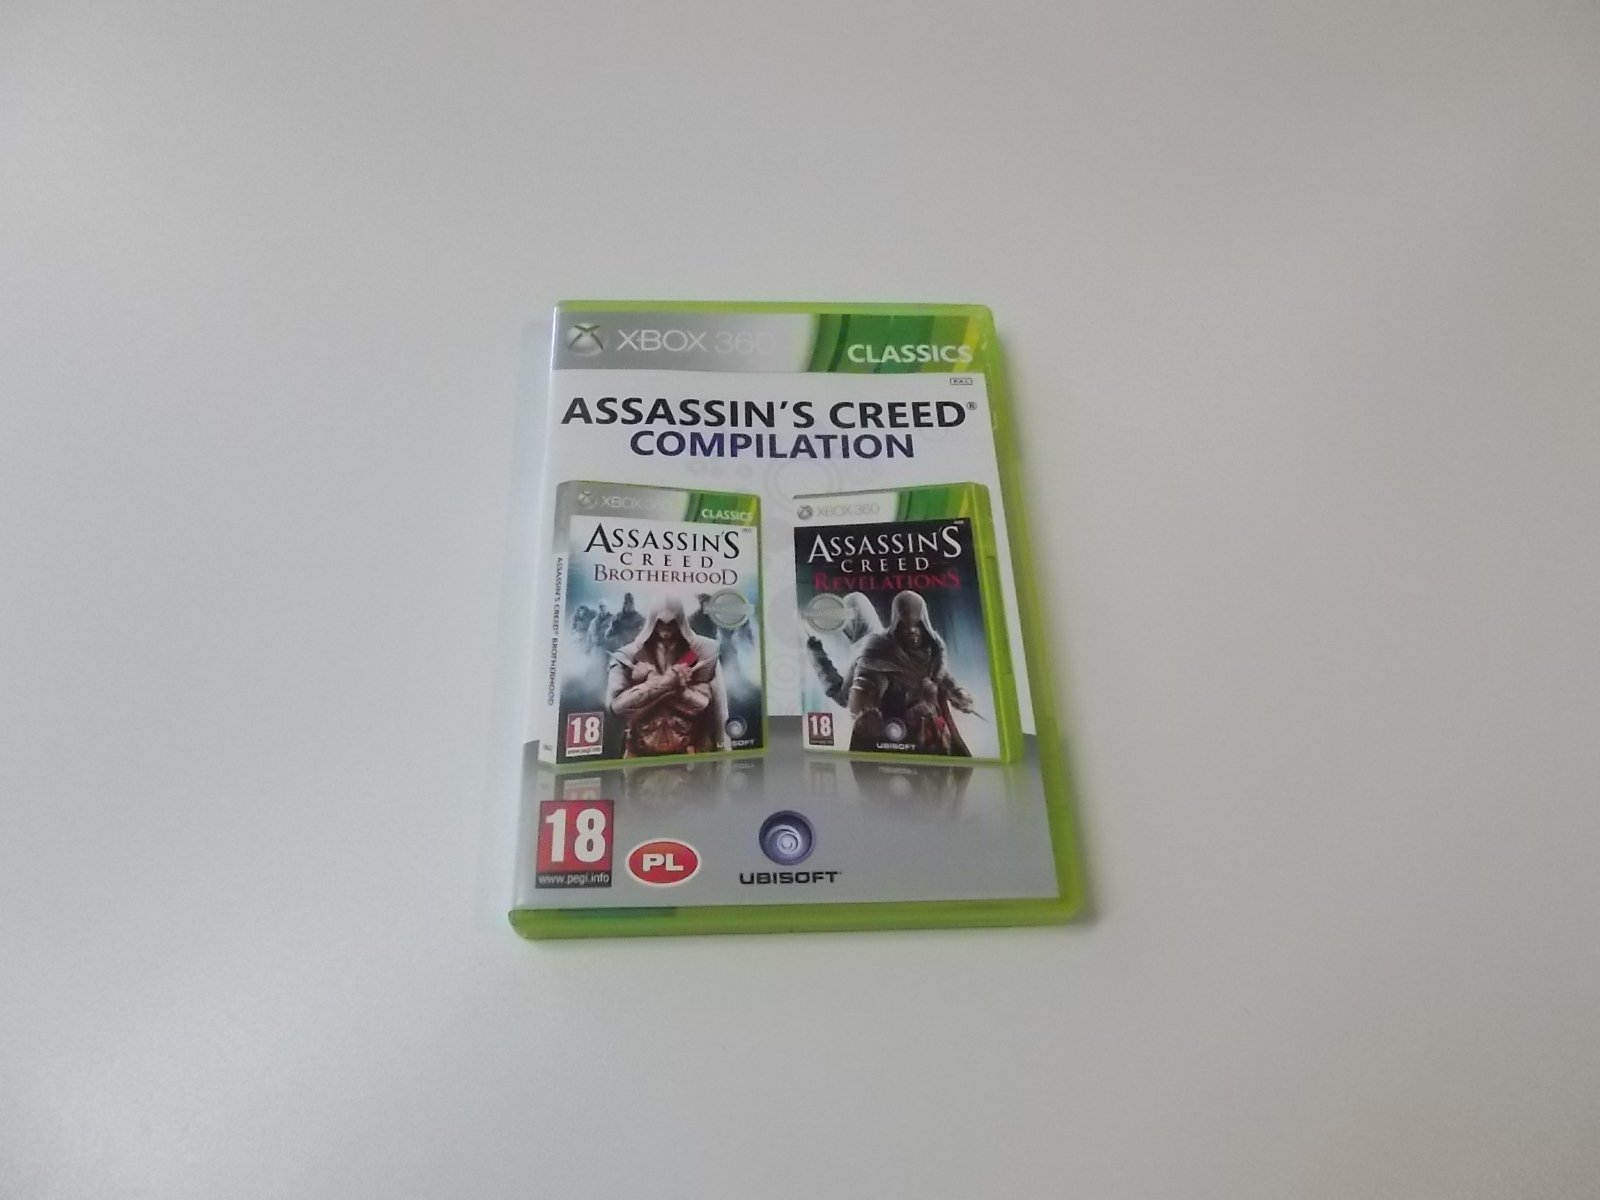 Assassin's Creed Compilation - GRA Xbox 360 - Opole 0438